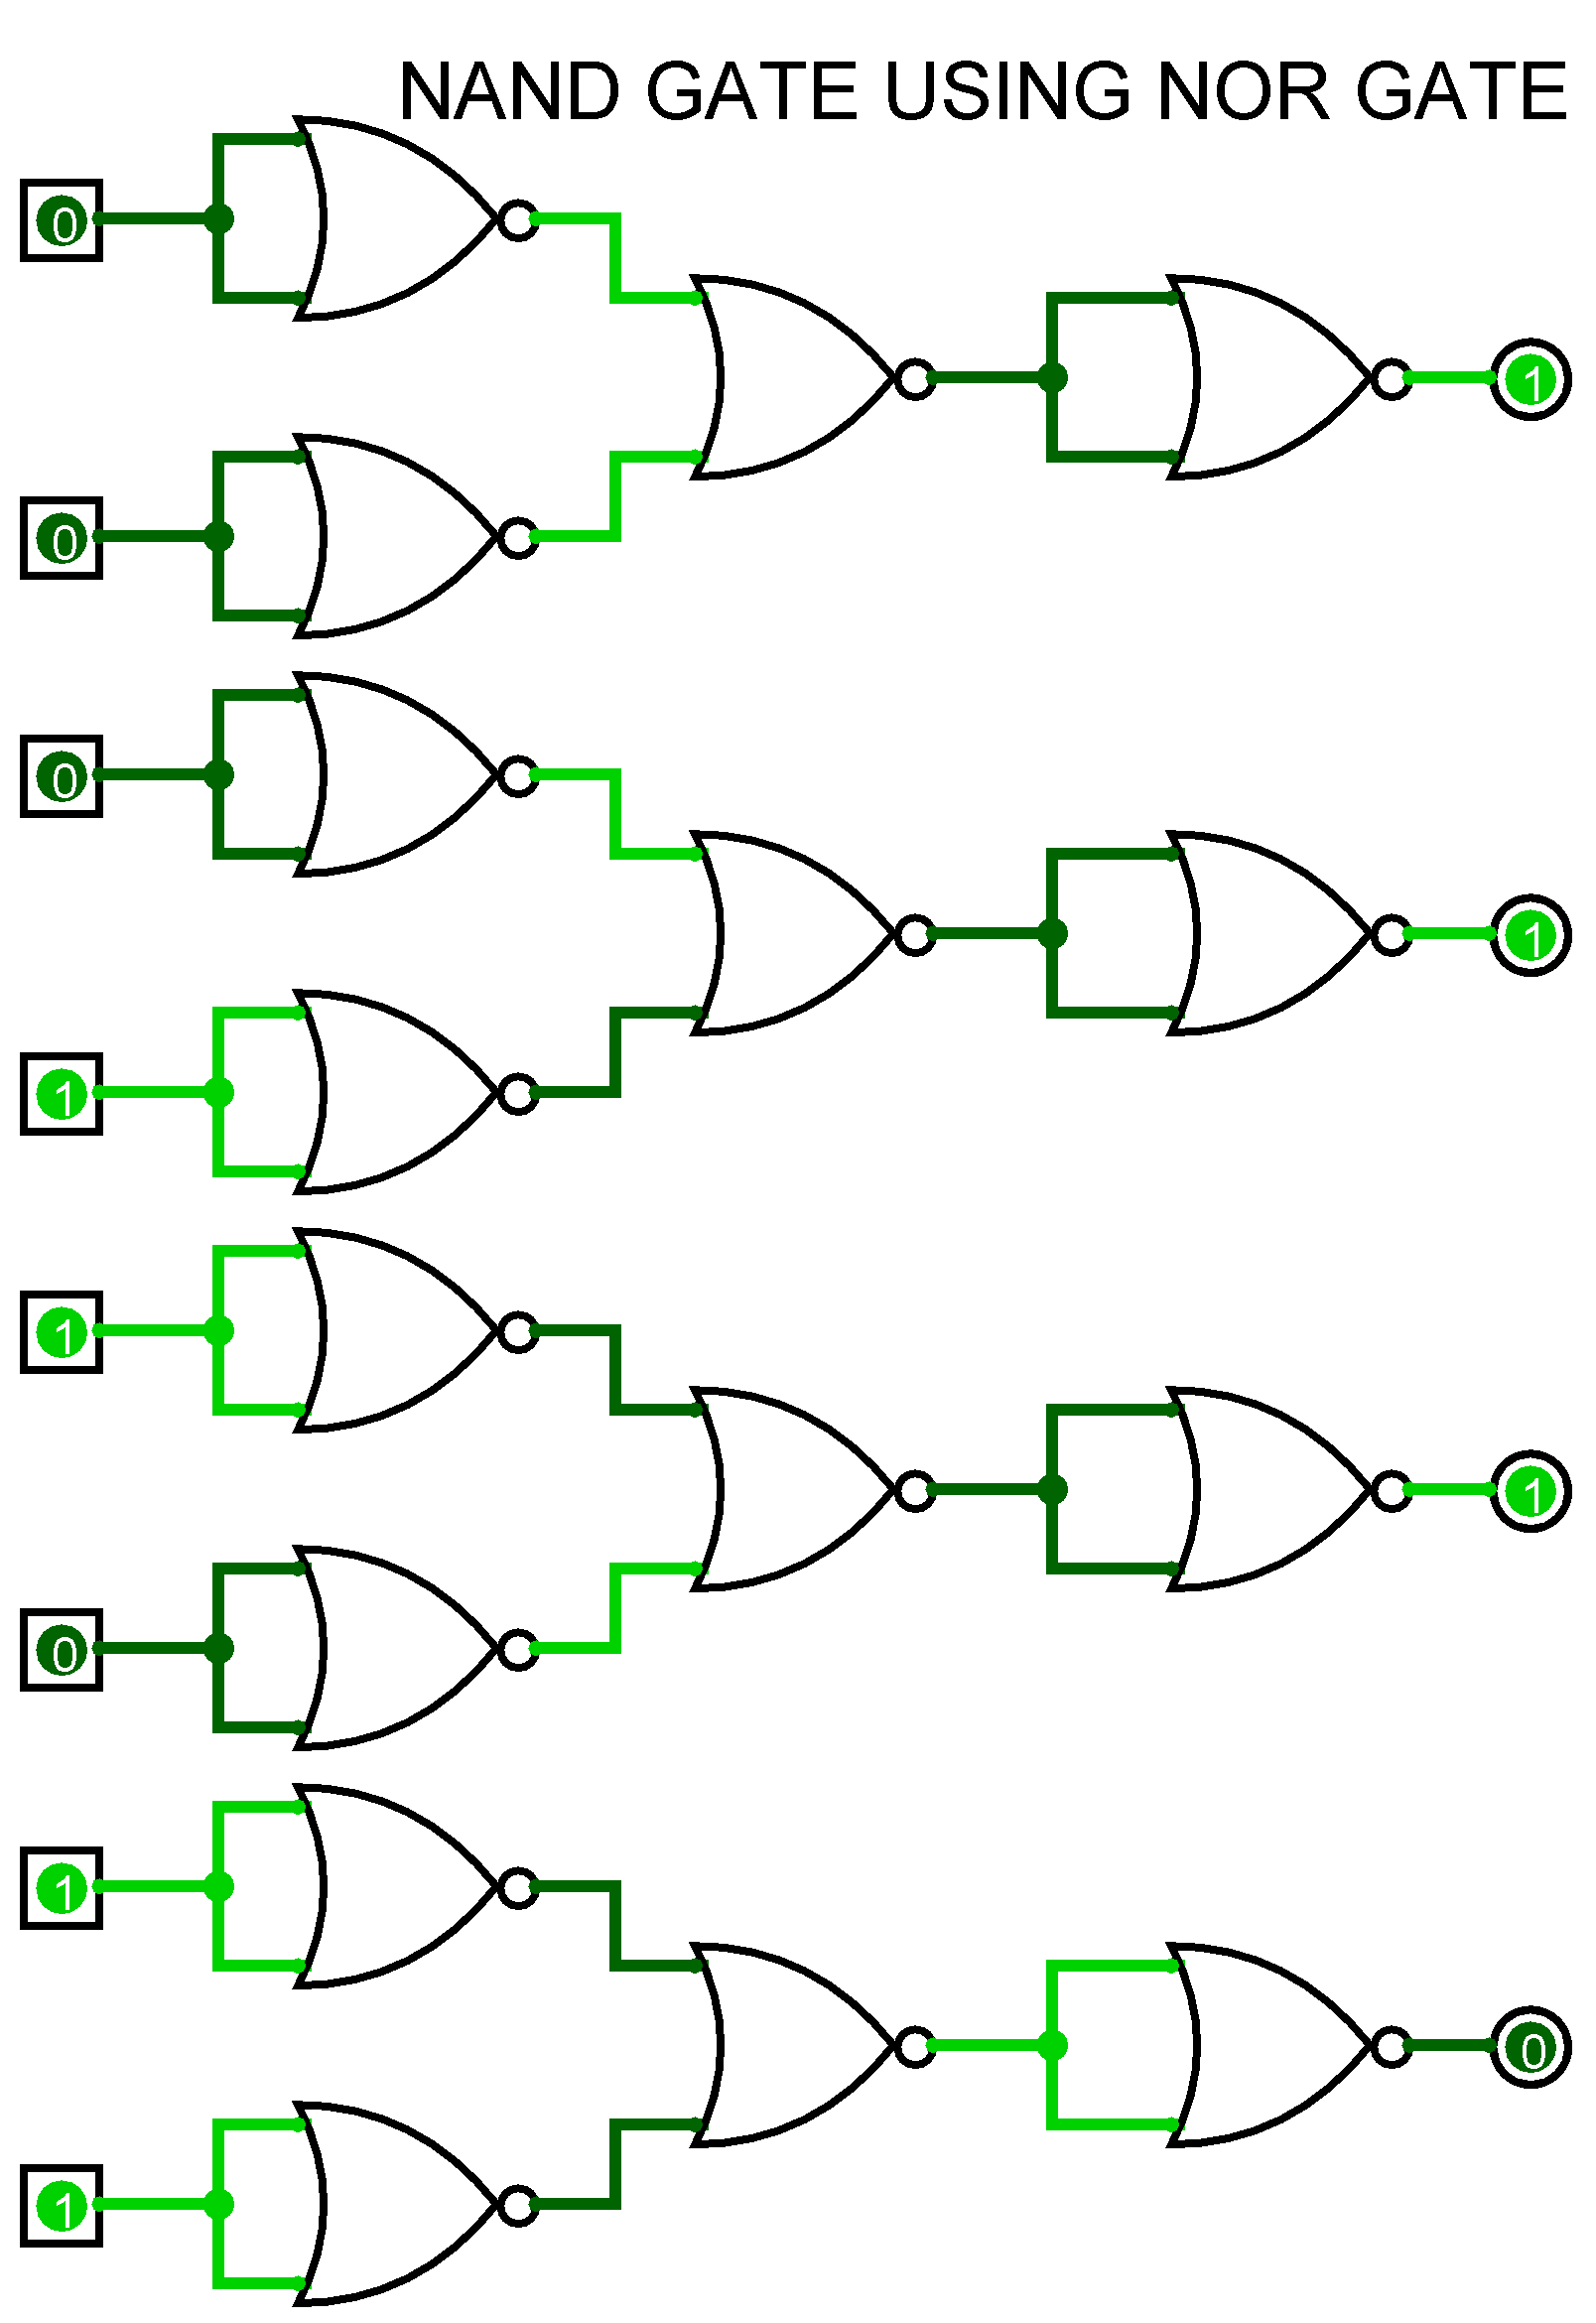 circut diagram nand gate logic diagram using nand gate to study and verify the truth table of logic gates. – ahirlabs